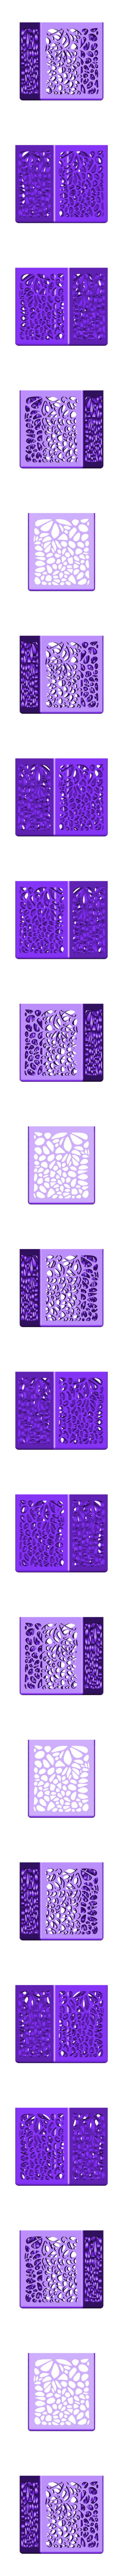 Orchid Square Pot.stl Download STL file Orchid Square Pot • 3D printing object, Eve